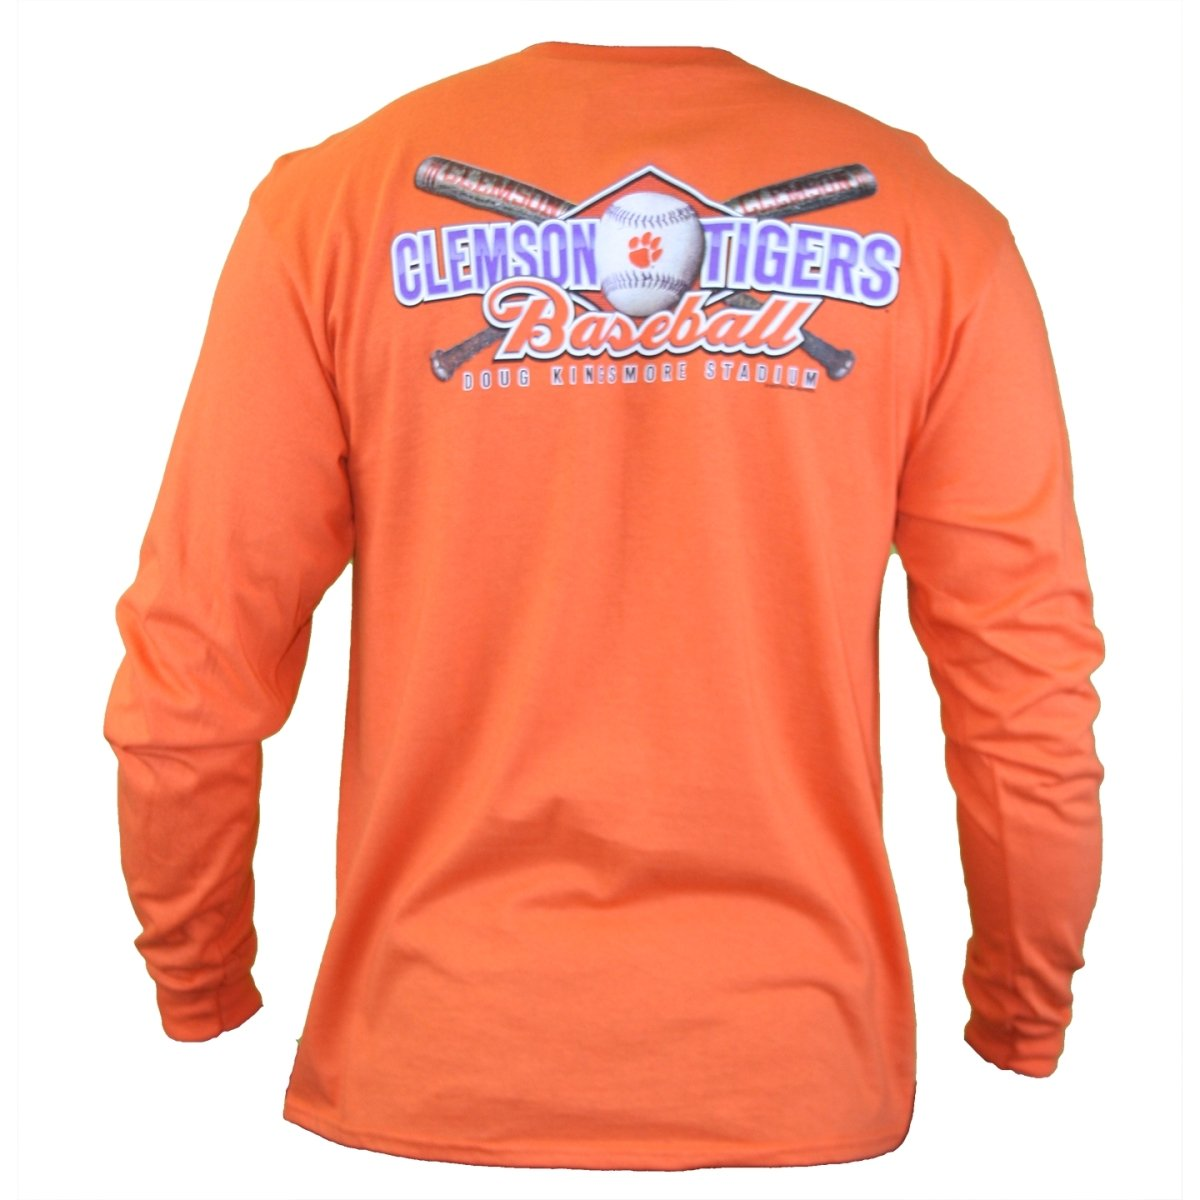 Clemson Tigers Baseball - Crossed Bats Long Sleeve T-shirt - Mr. Knickerbocker